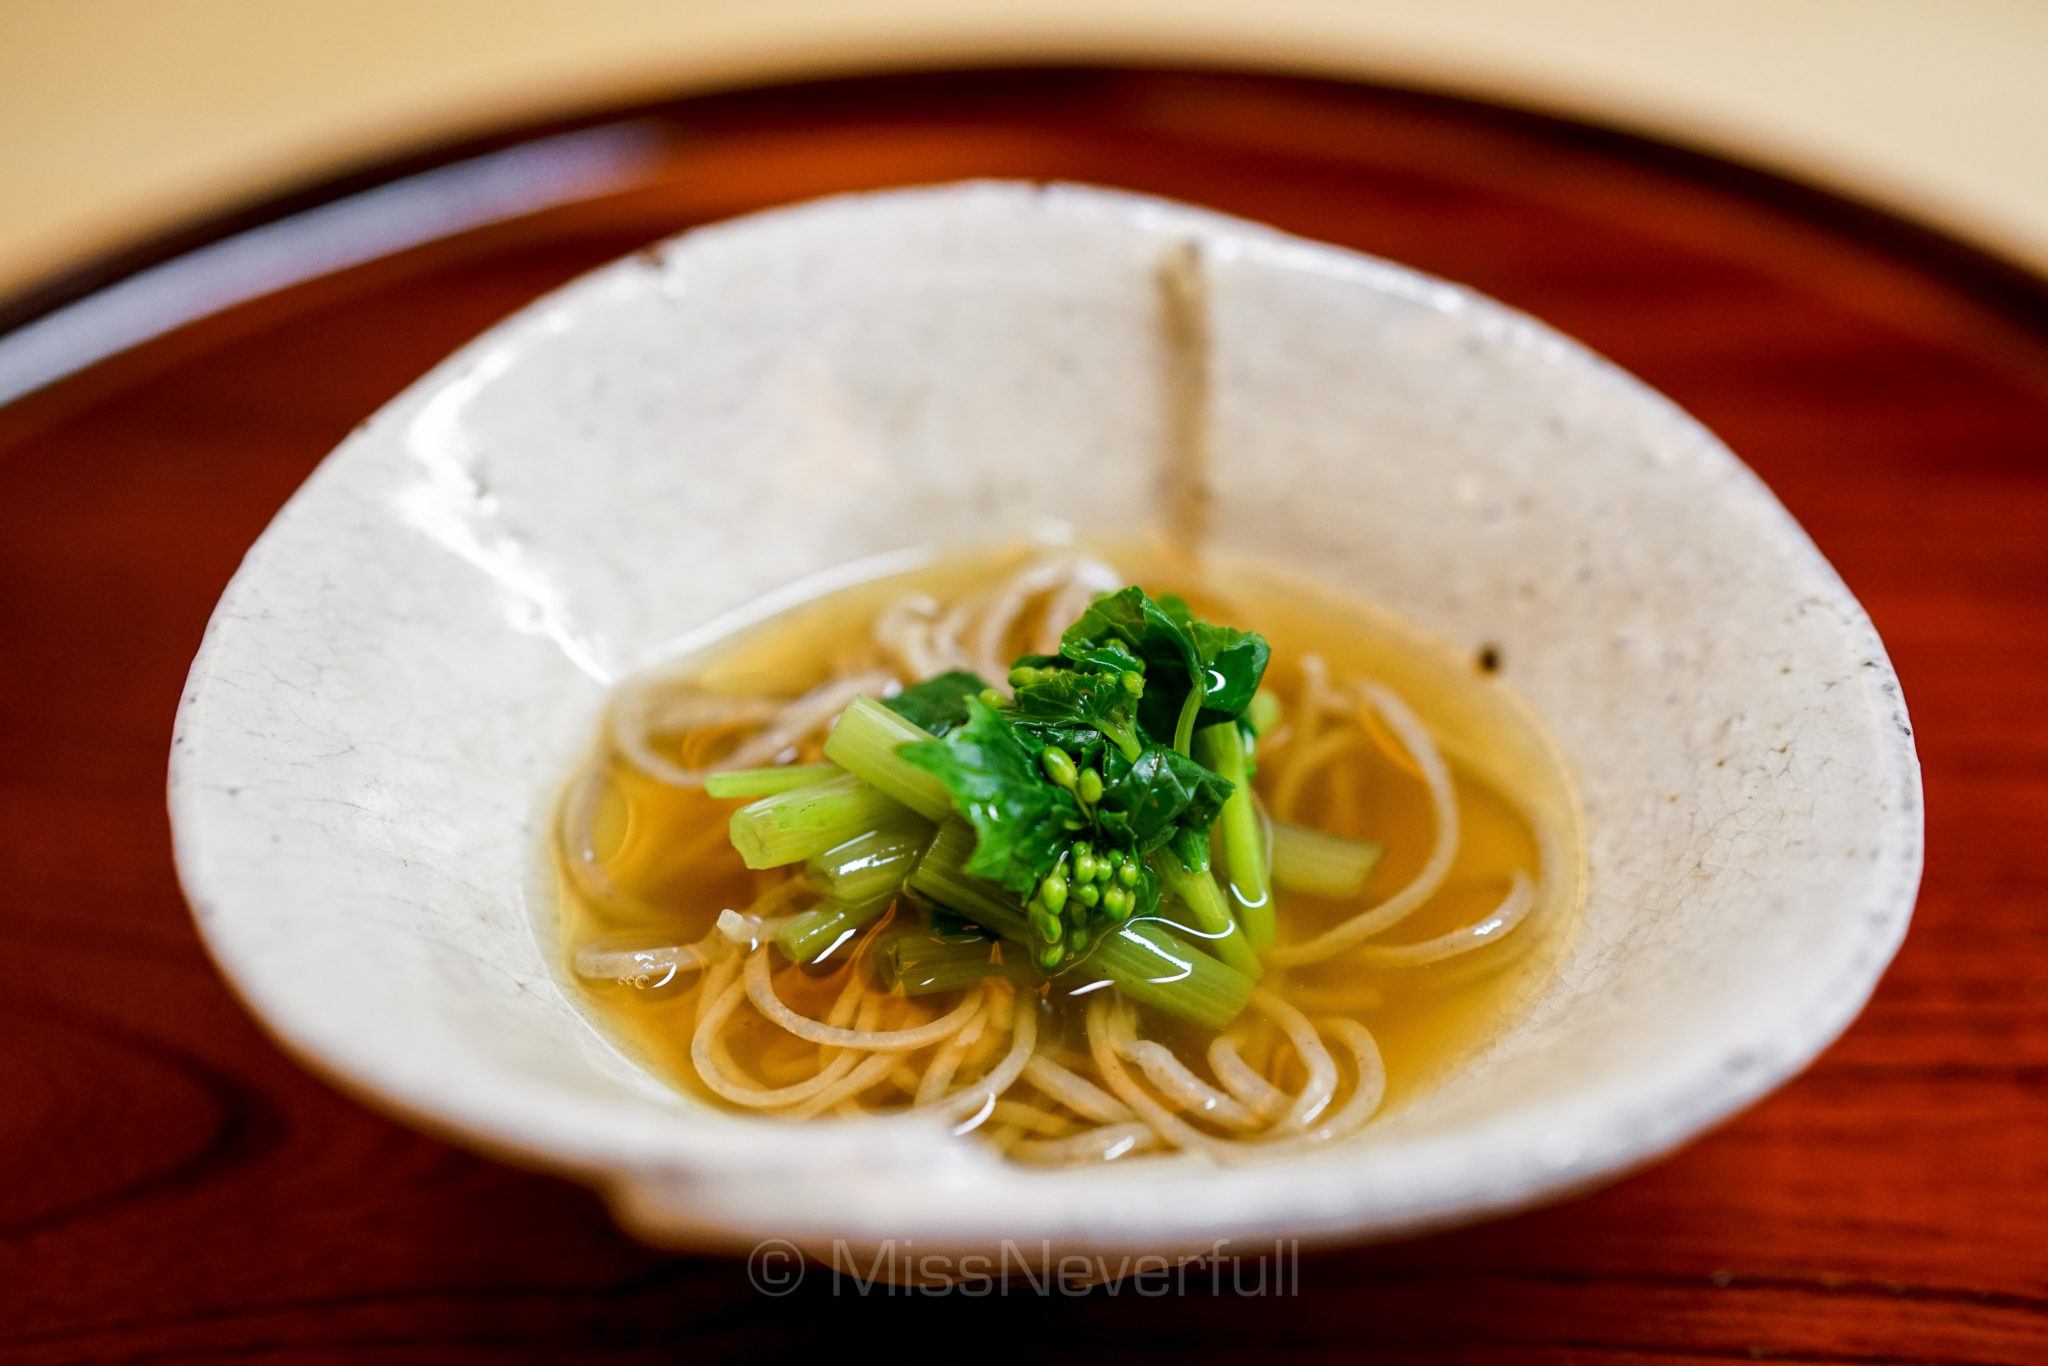 13. 手打ち十割蕎麦と山菜 | Handmade 100% buckwheat soba, moutain vegetables